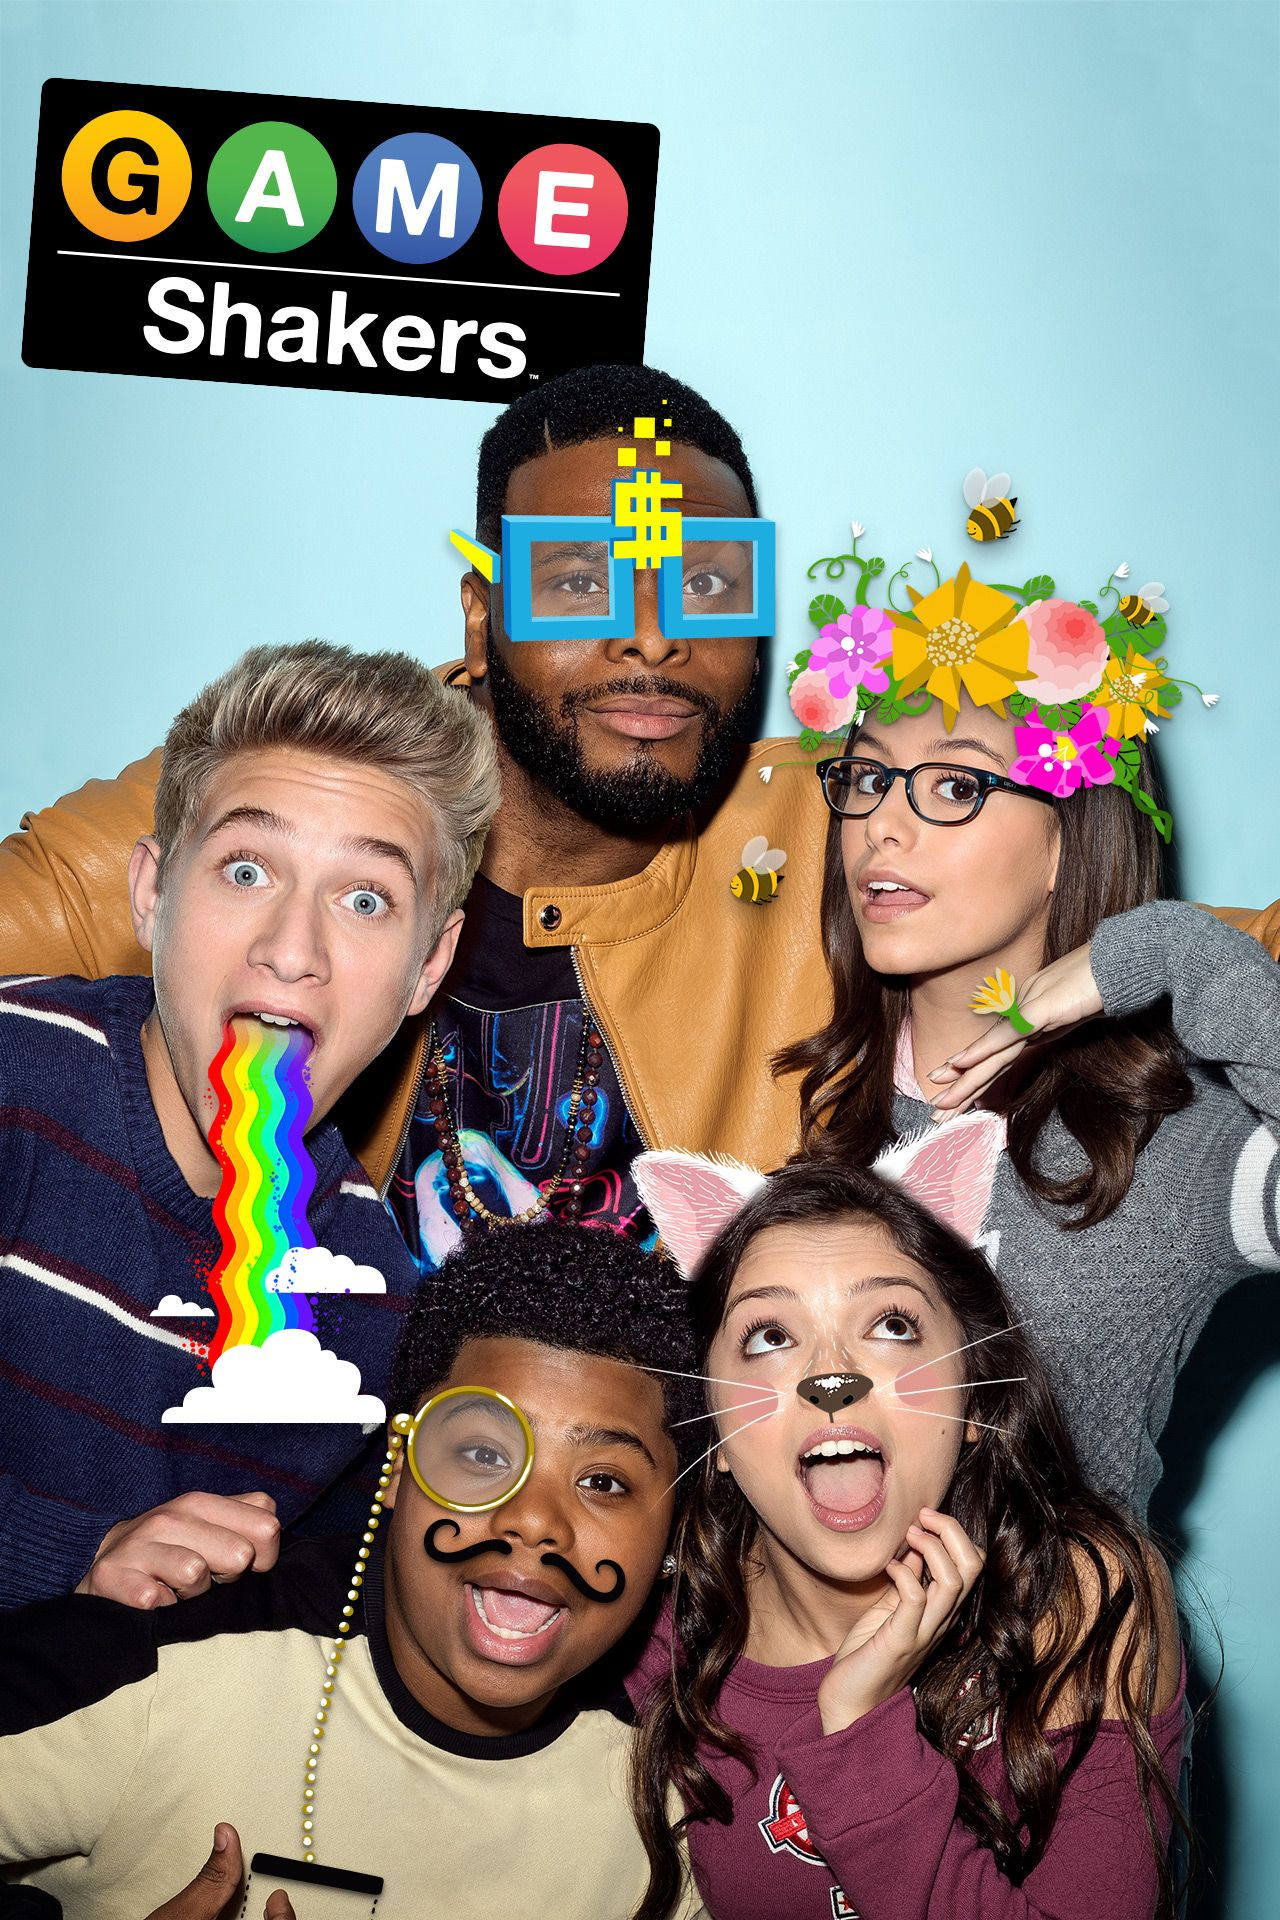 Kel Mitchell, Madisyn Shipman, Benjamin Flores Jr., Thomas Kuc, and Cree Cicchino in Game Shakers (2015)